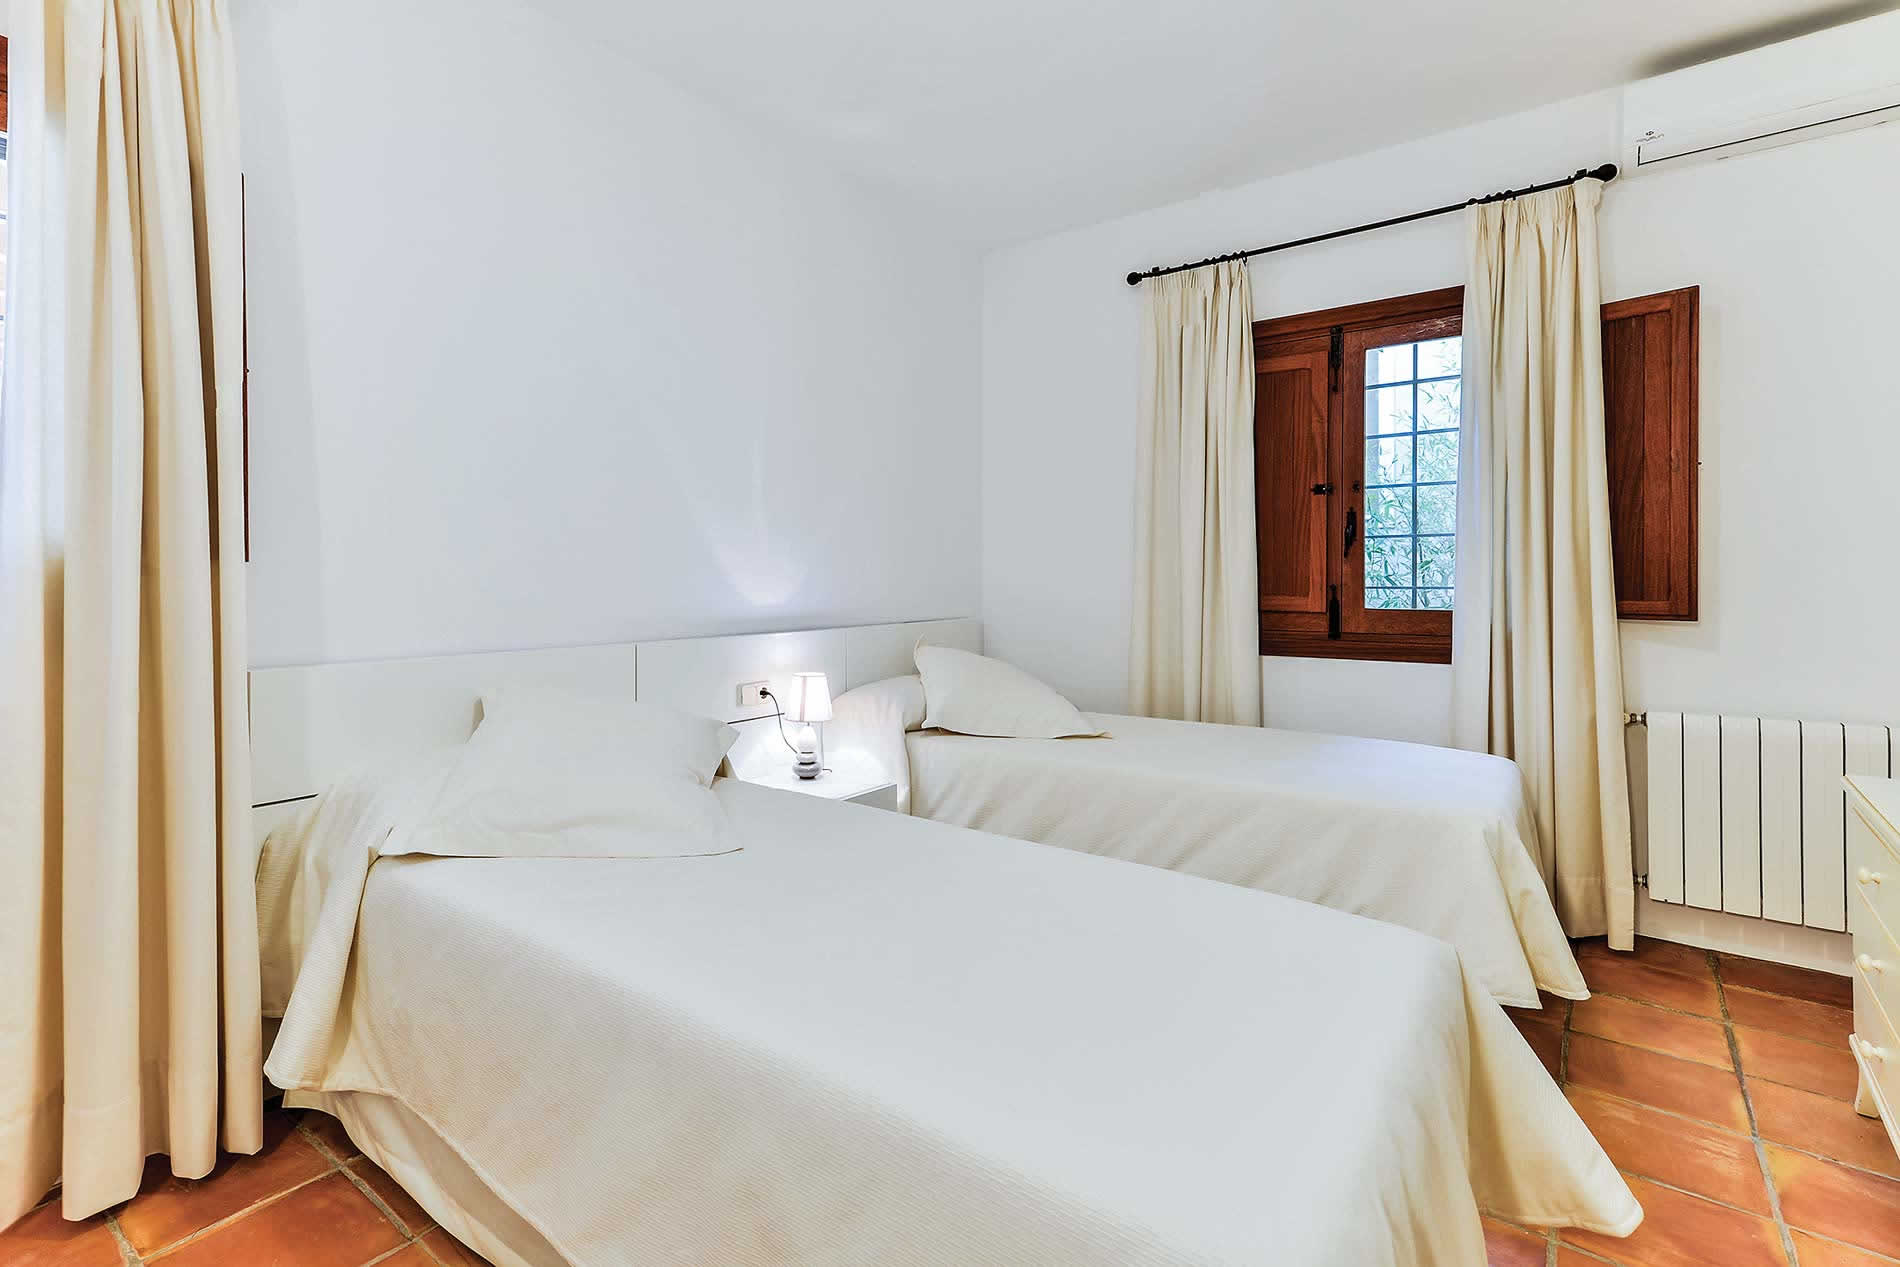 Villa S'Hort d'es Guelo in Santa Eulalia - sleeps 10 people